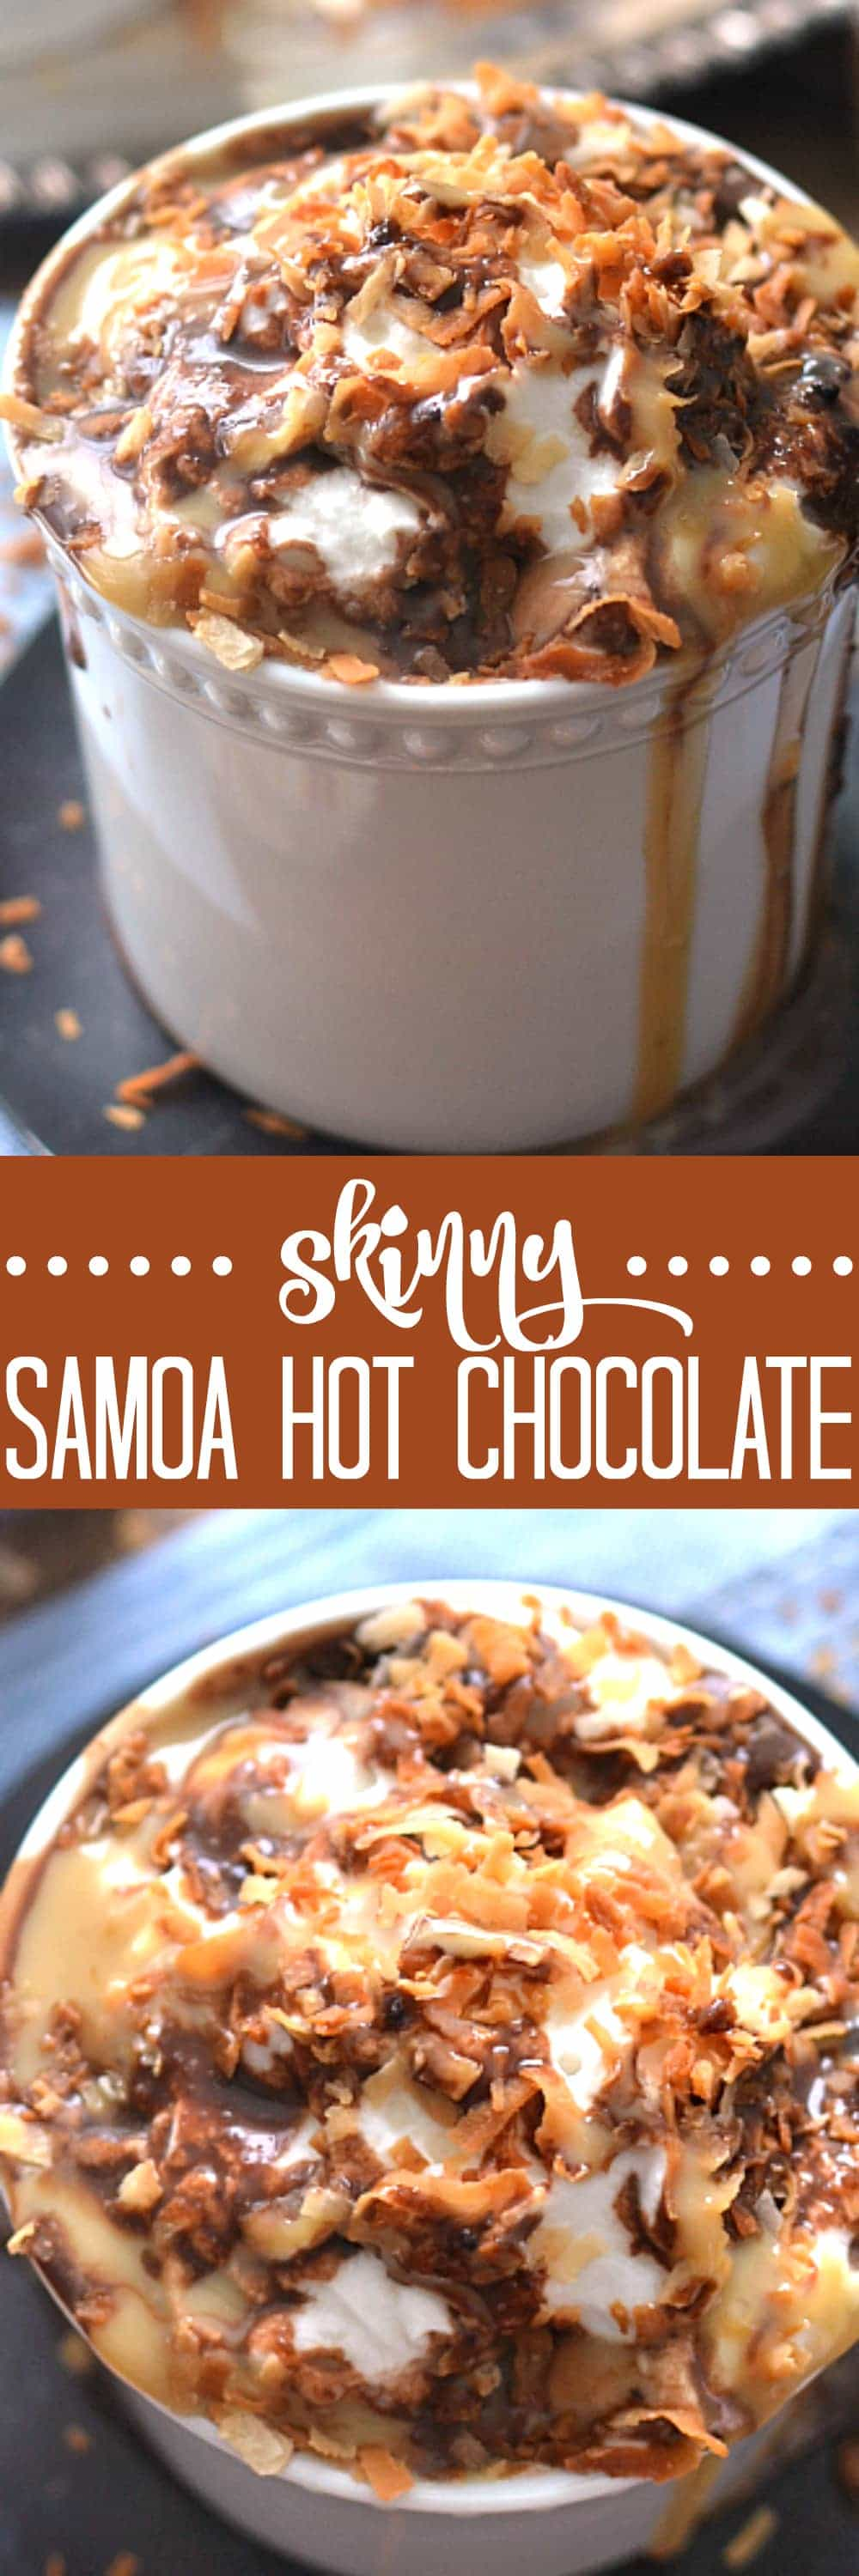 Skinny Samoa Hot Chocolate made with homemade chocolate and caramel sauces, toasted coconut, and Truvia! The perfect way to indulge....without any of the guilt!